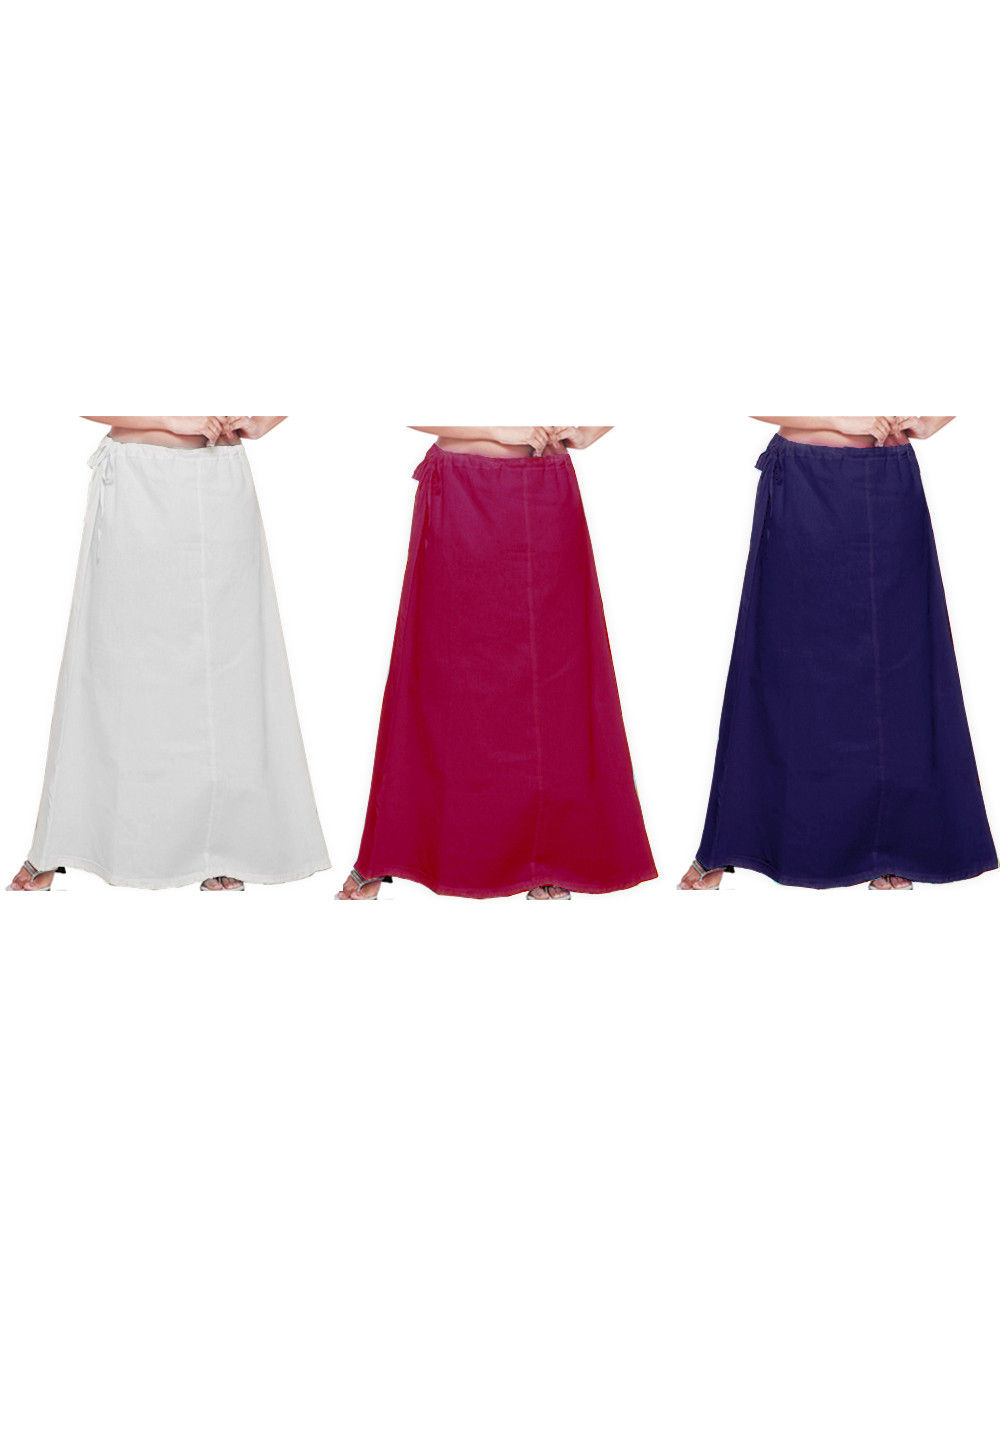 Combo Set Cotton Petticoat in White, Magenta and Navy Blue